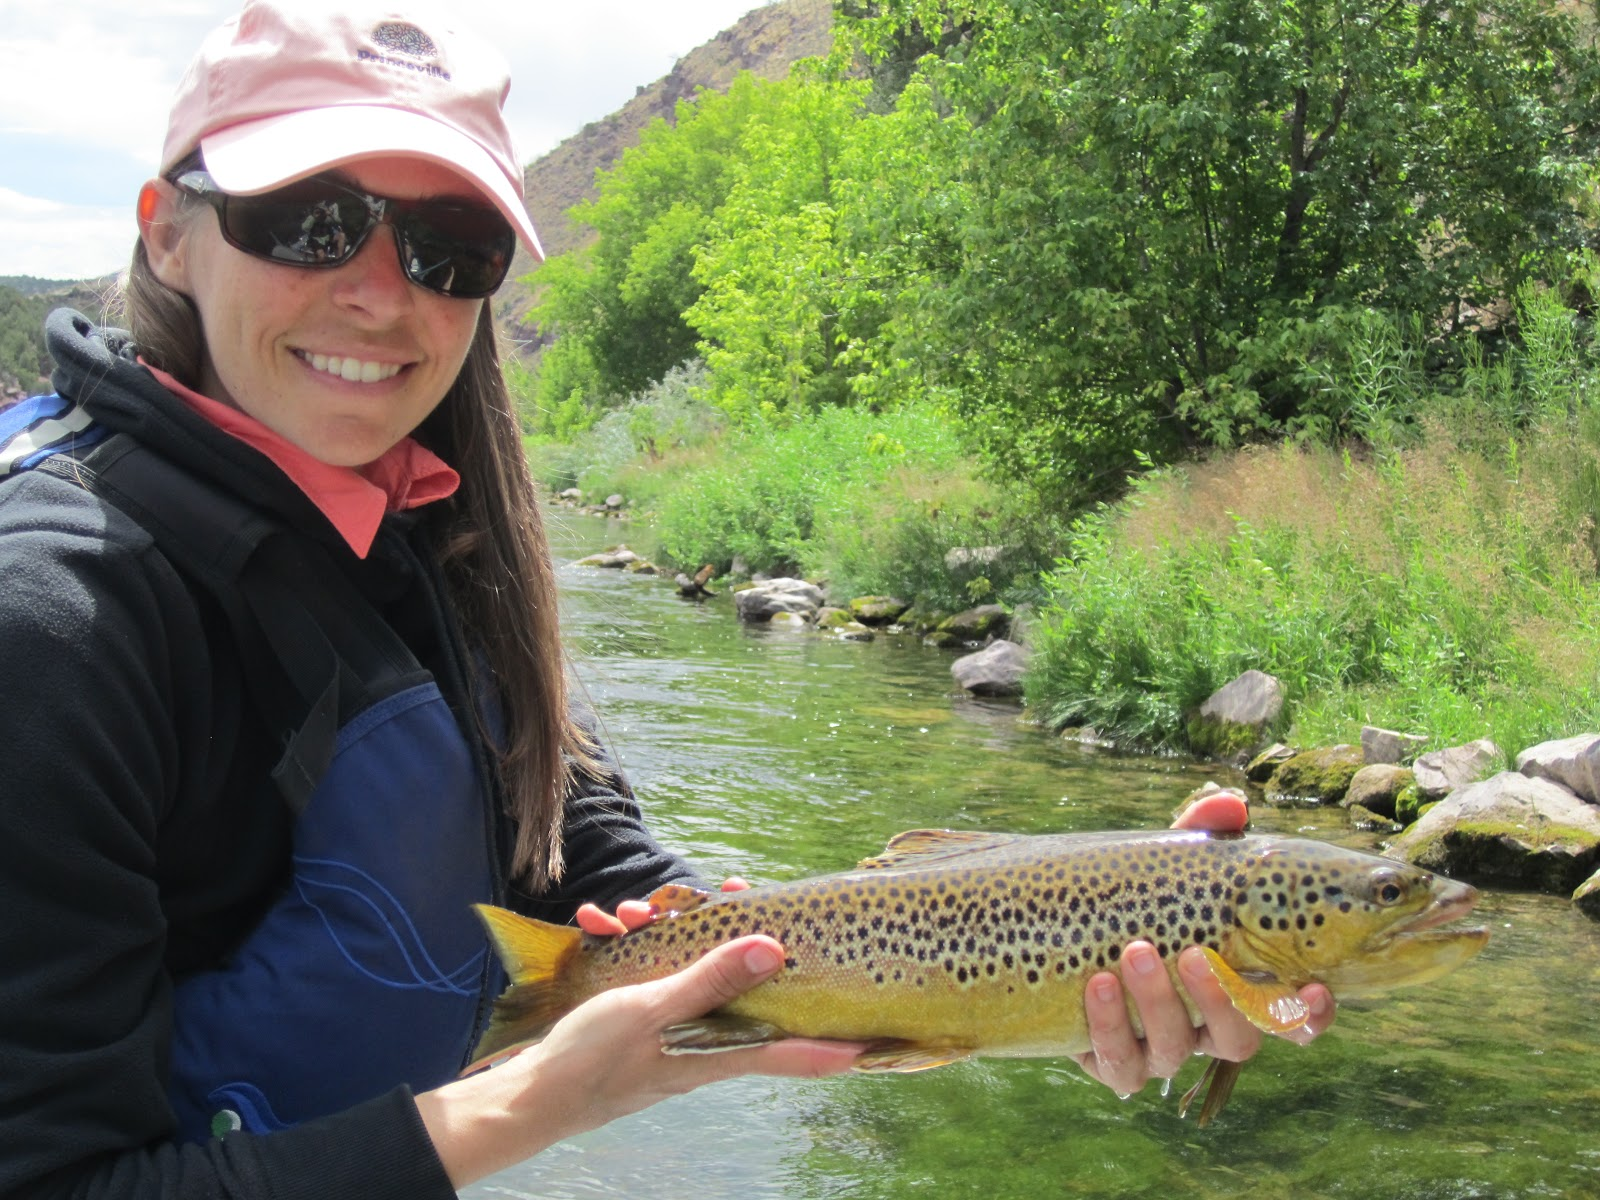 Jay scott outdoors green river flyfishing report for Green river fly fishing report